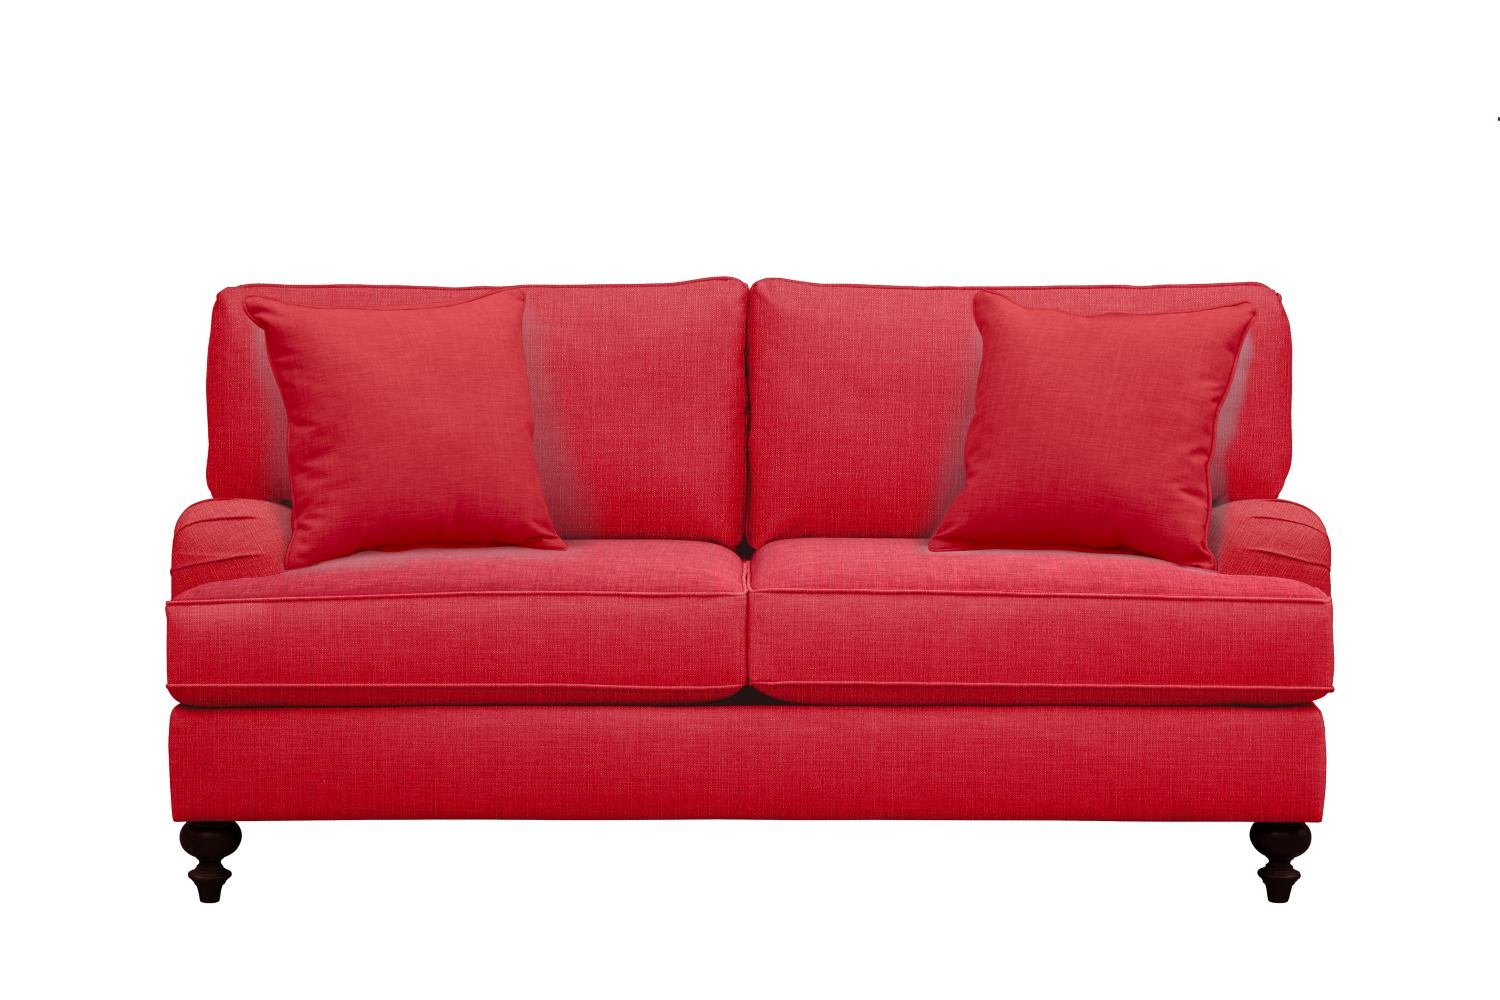 "Living Room Furniture - Avery English Arm Sofa 74"" Depalma Cherry w/ Depalma Cherry Pillow"